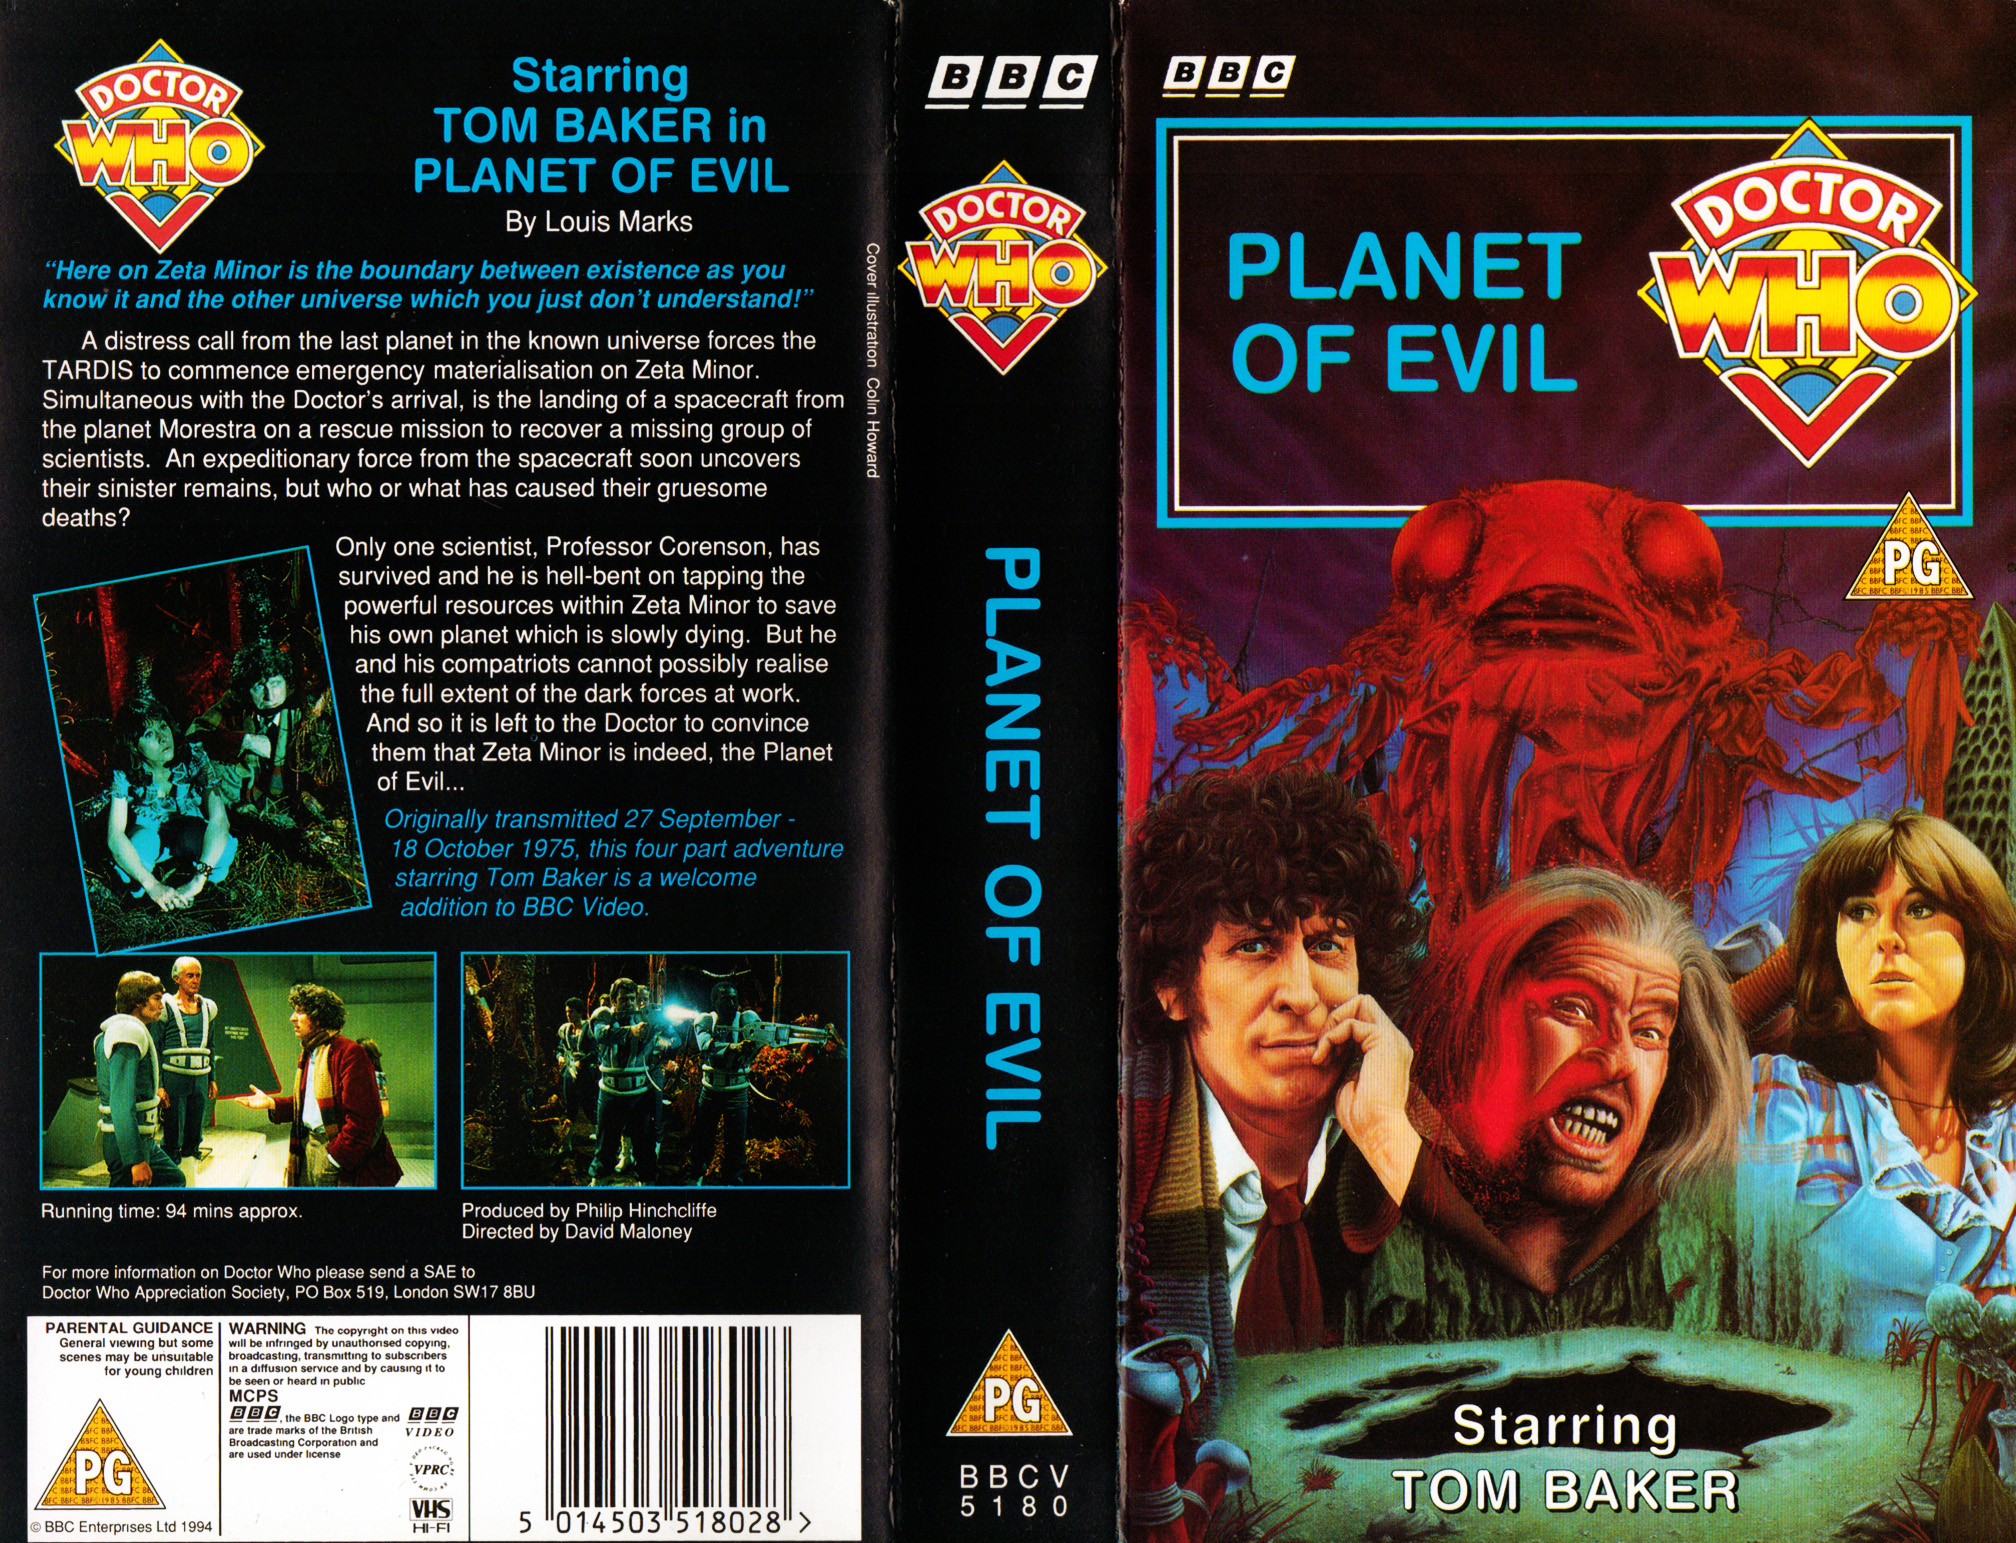 Planet of Evil VHS